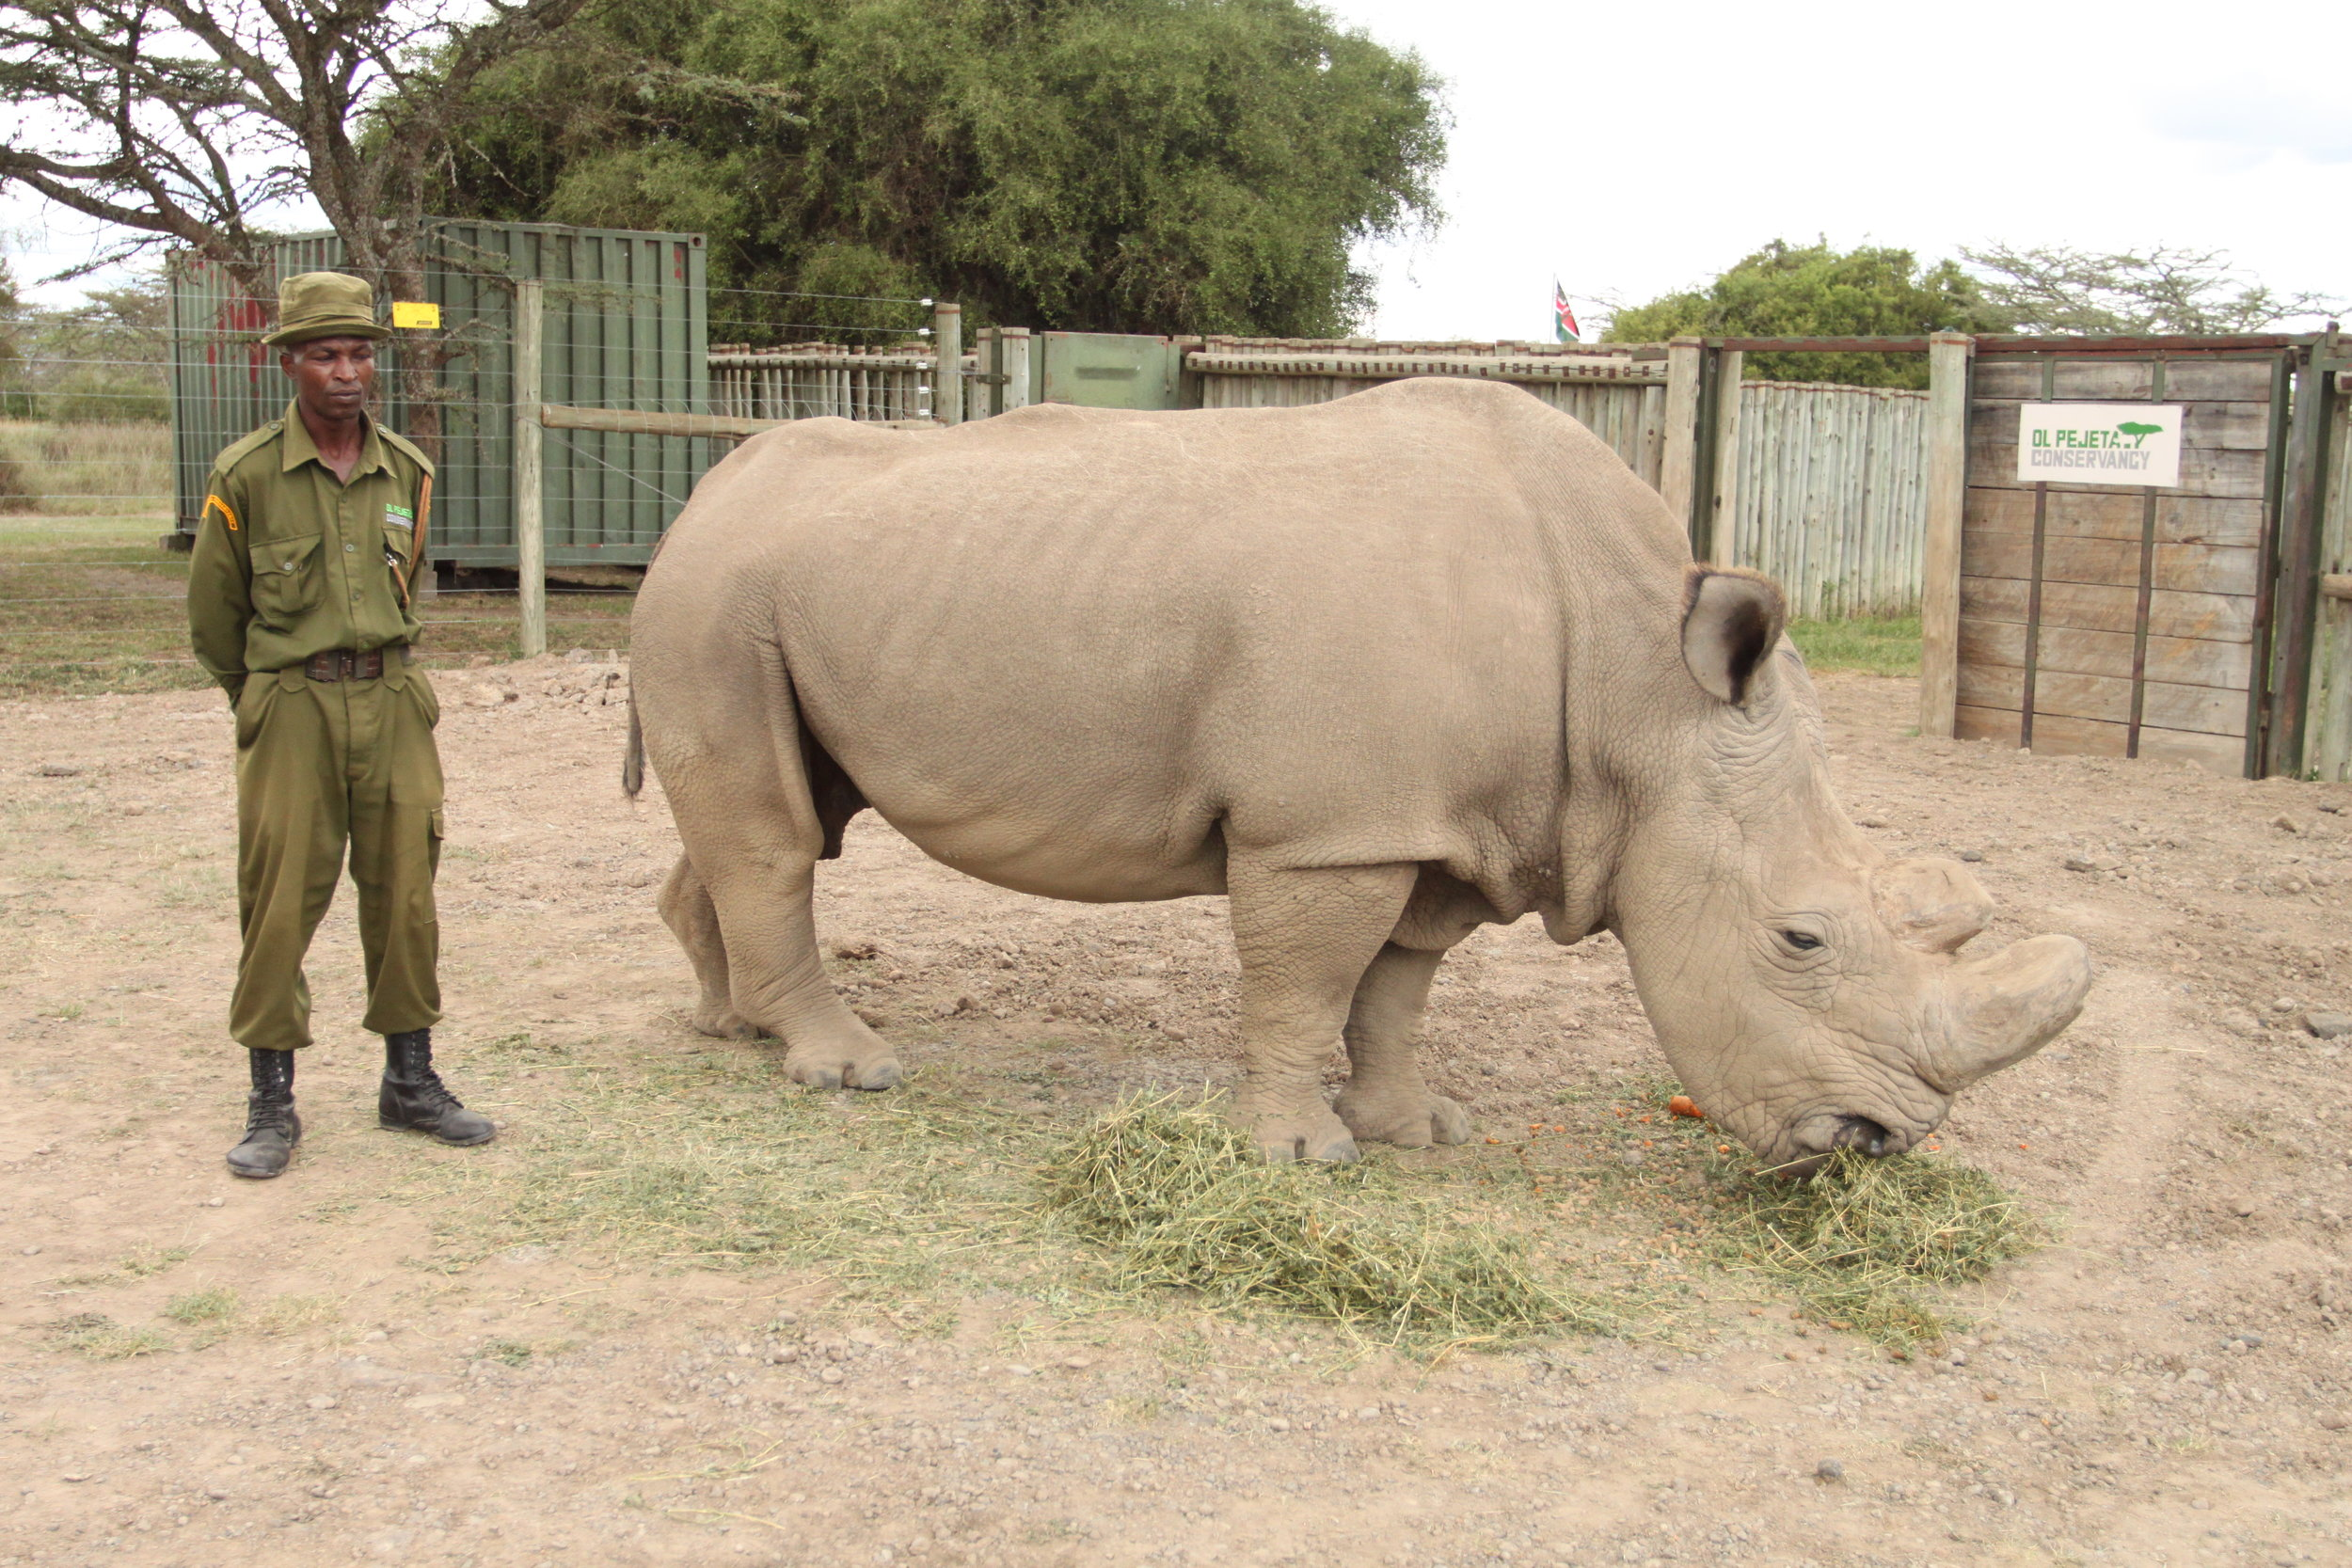 Sudan, the world's last male northern white rhino, at his final home at Ol Pejeta Conservancy in Kenya.